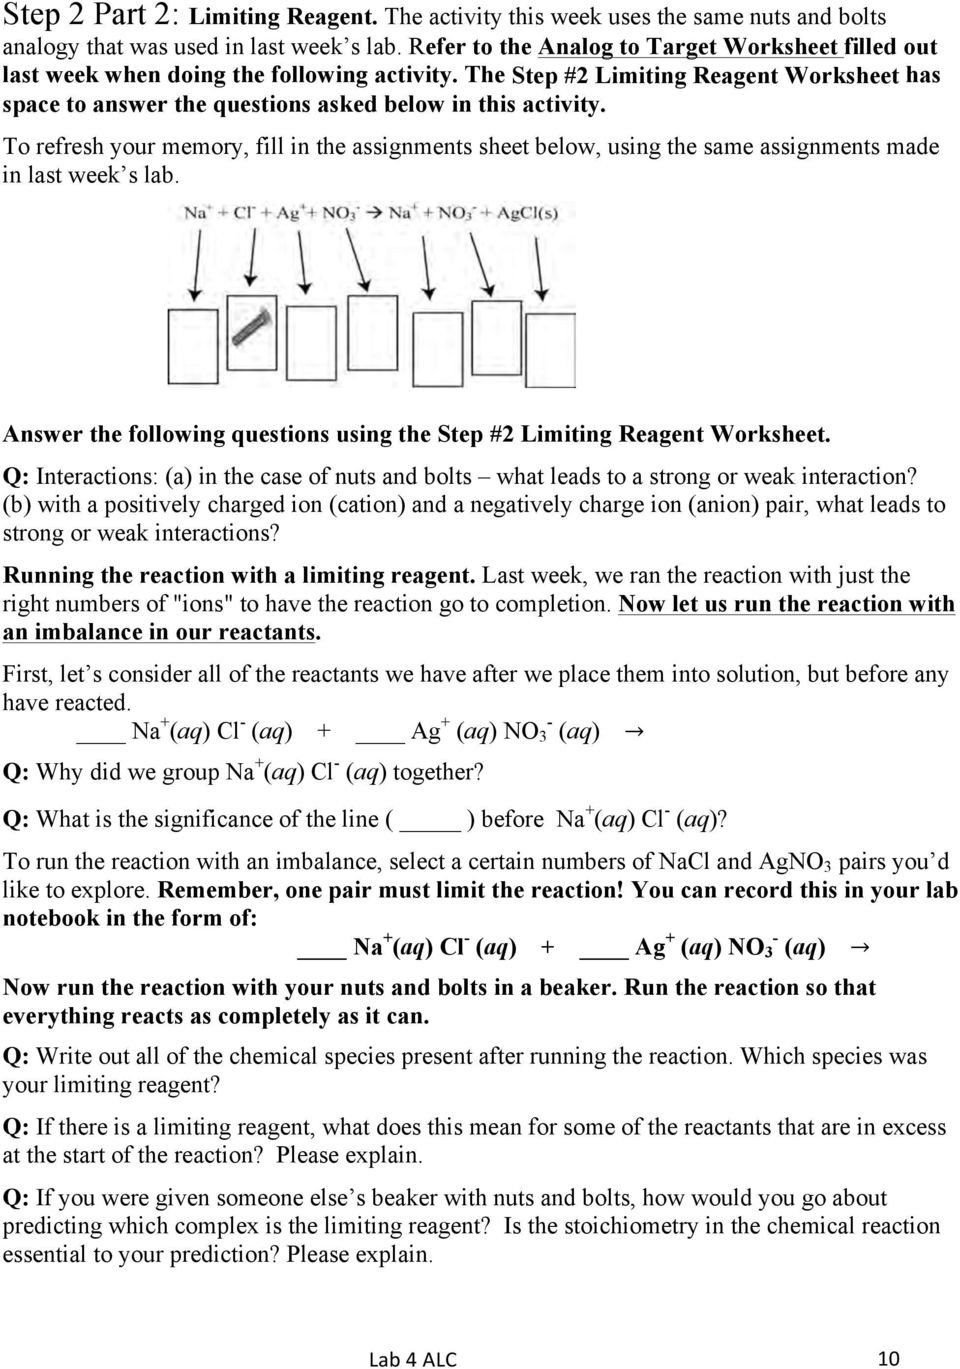 Limiting Reactant Worksheet Answers Limiting Reagent Using An Analogy And A Learning Cycle Worksheets Answers Printable Worksheets